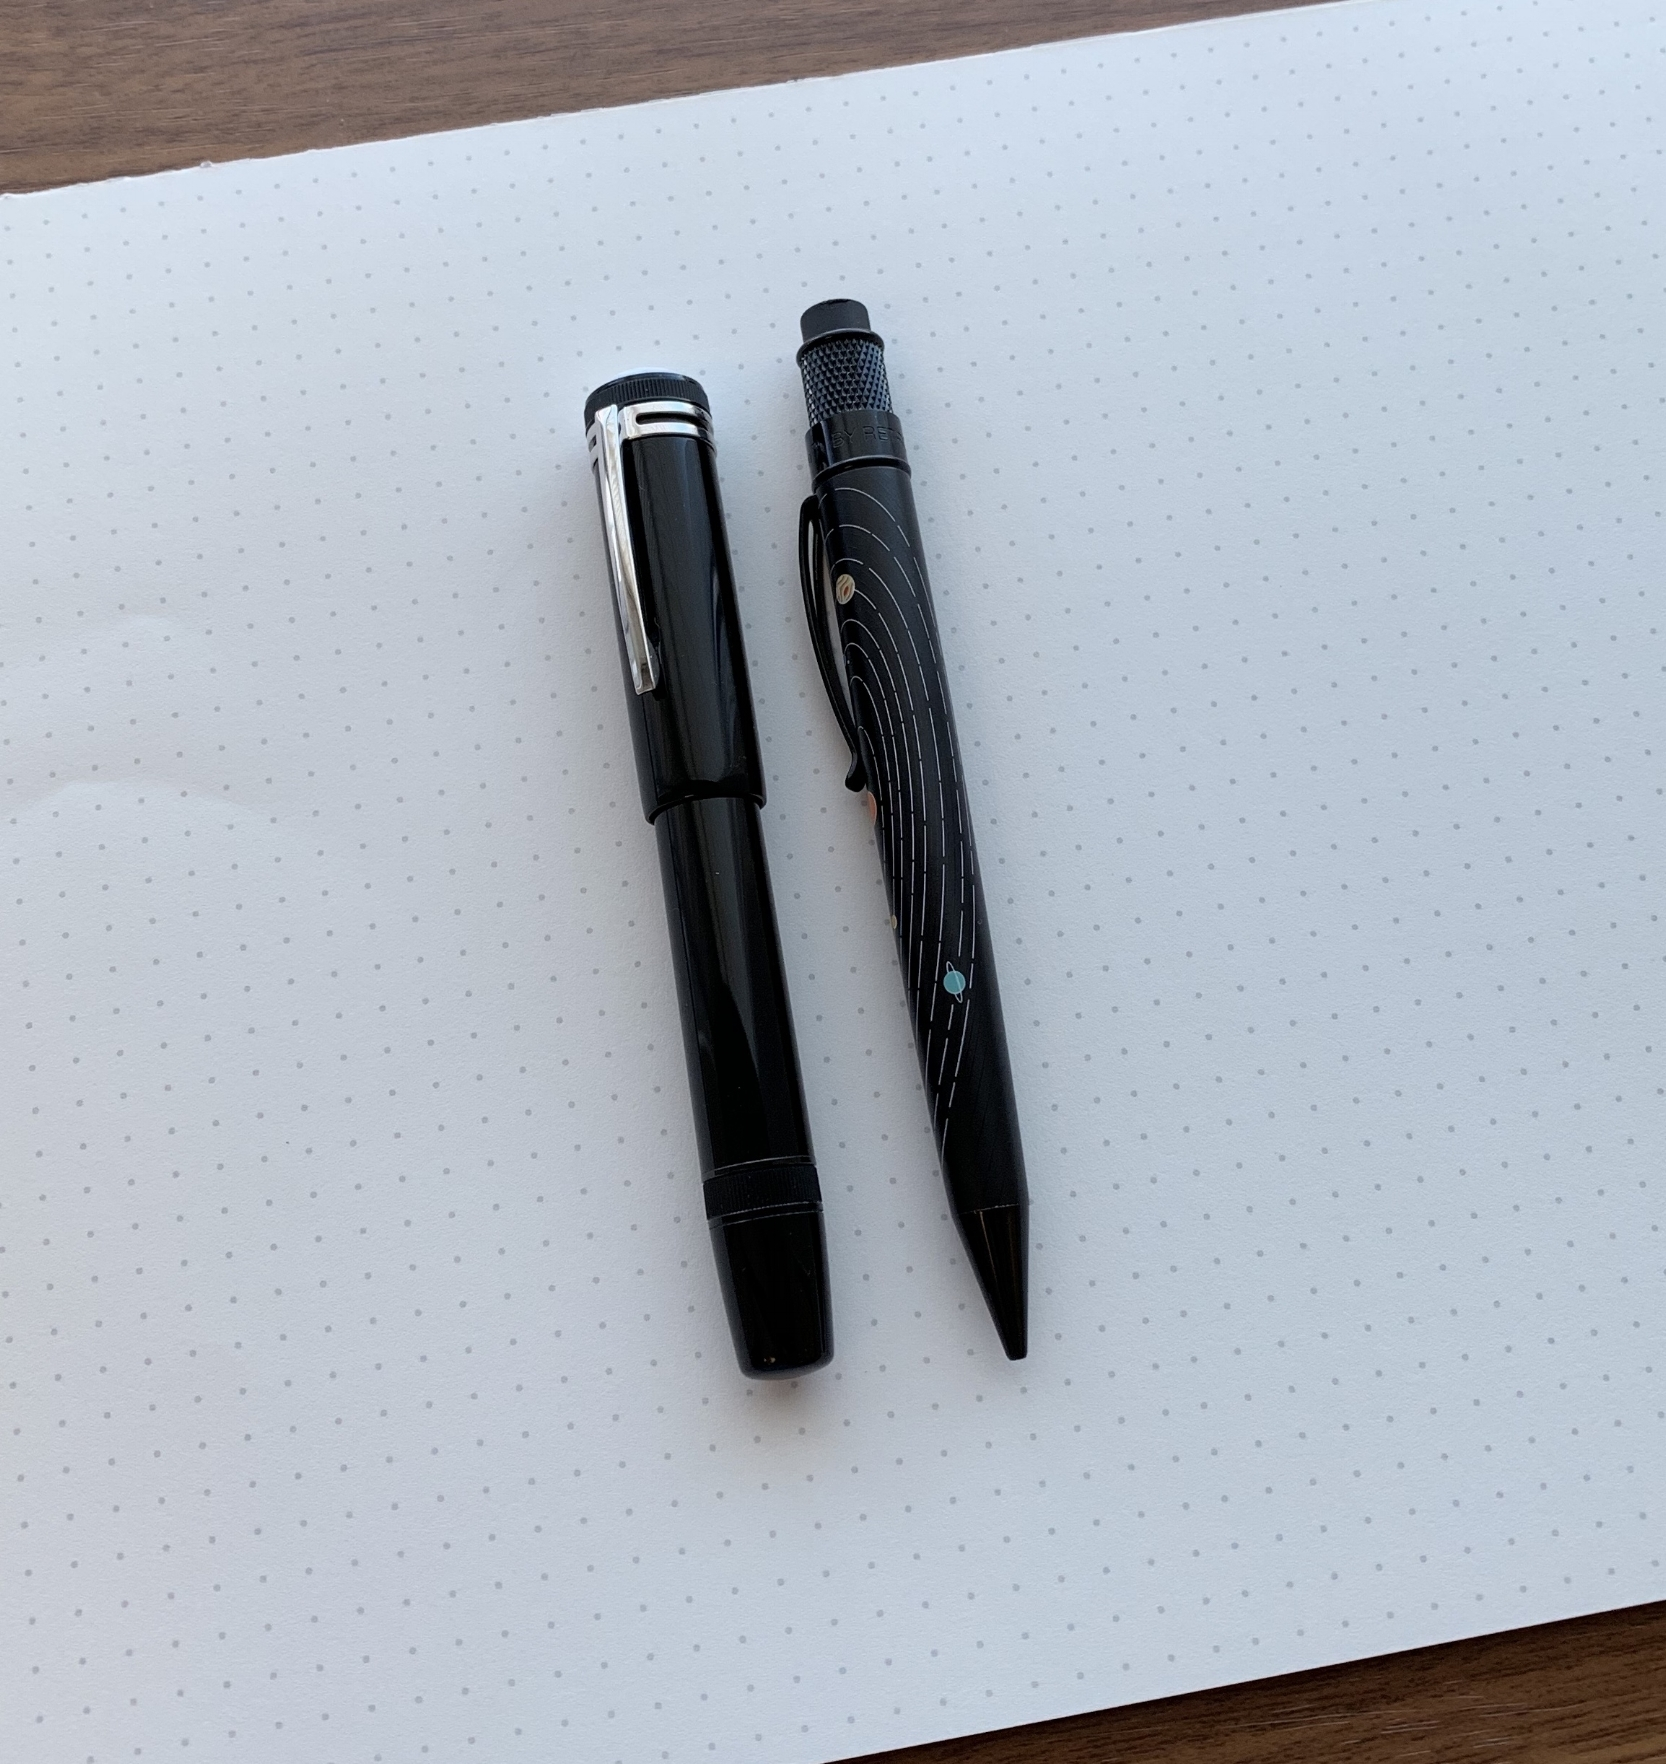 "A size comparison shot of the Montblanc Heritage 1912 against my recently acquired - and sharp looking -  Retro 51 ""The System"" pencil  from Mike Dudek of the Clicky Post!"